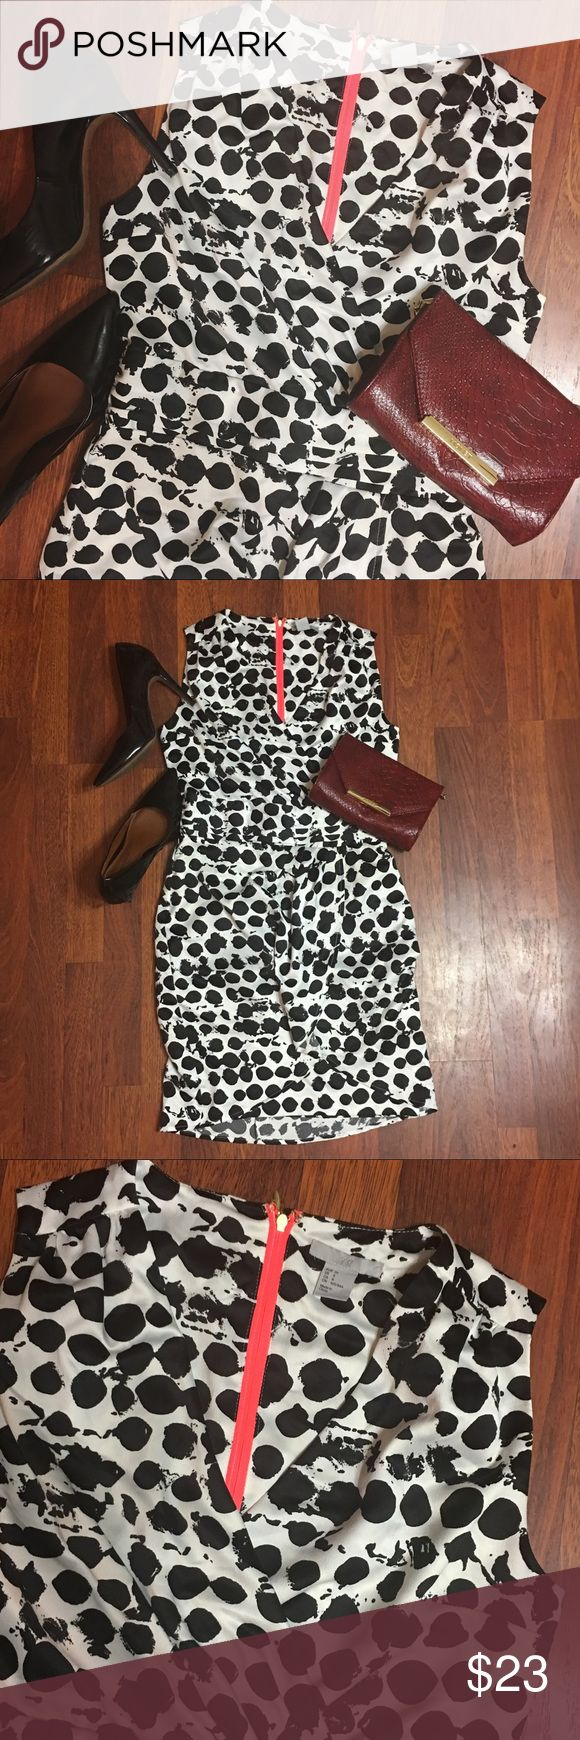 """Polka Dot H&M dress White and black polka dot sheath dress. Ruched banding at the waist and tulip style skirt.  Hits just above my knee at 5'5"""".  Softly textured fabric and zipper closure in the back. ✨✨✨Worn only once and in great condition. Perfect for work or a night out!✨✨✨✨ H&M Dresses Mini"""